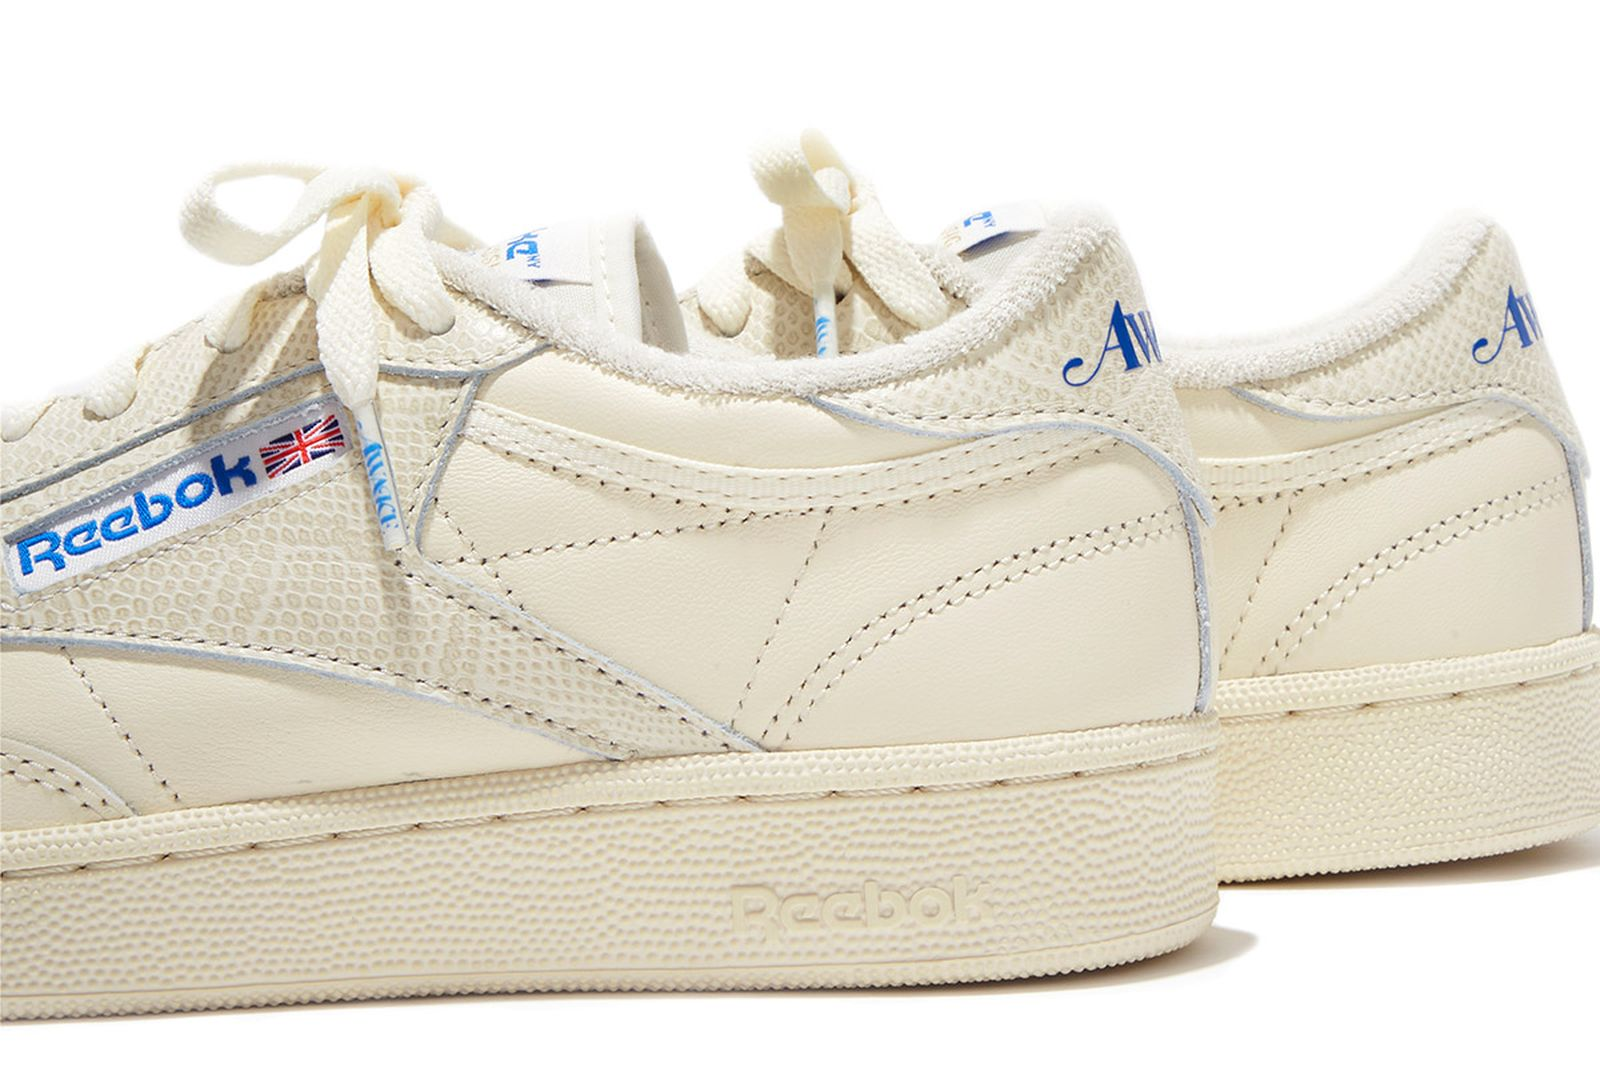 awake-ny-reebok-club-c-classic-leather-release-date-price-03